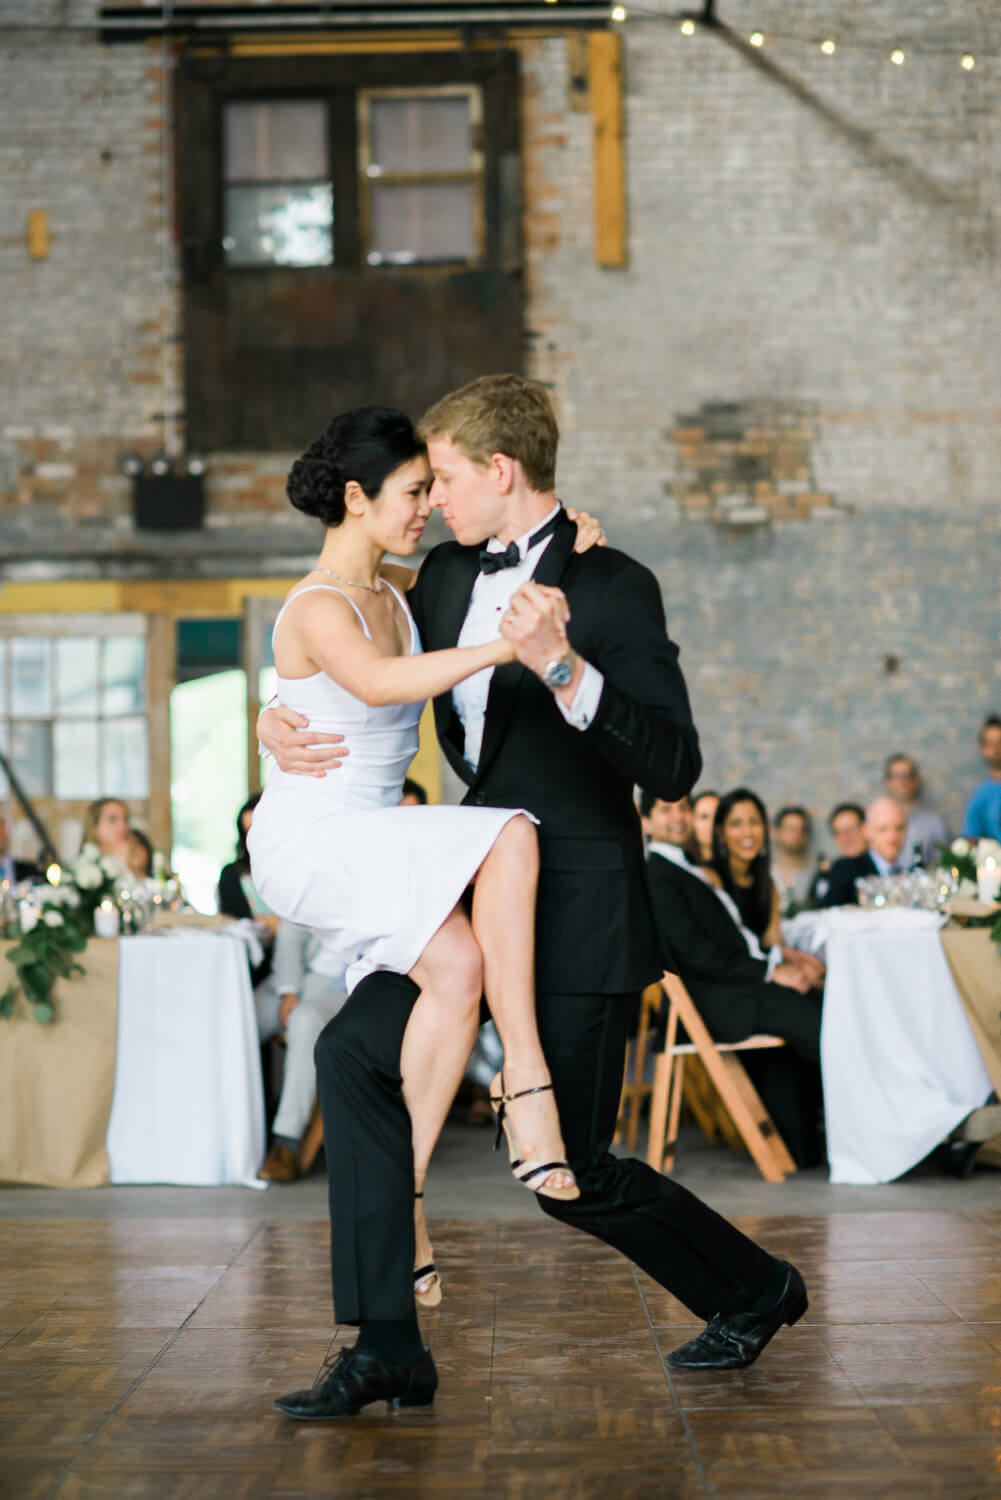 Geoff and Tze dancing a Tango Choreography at their wedding